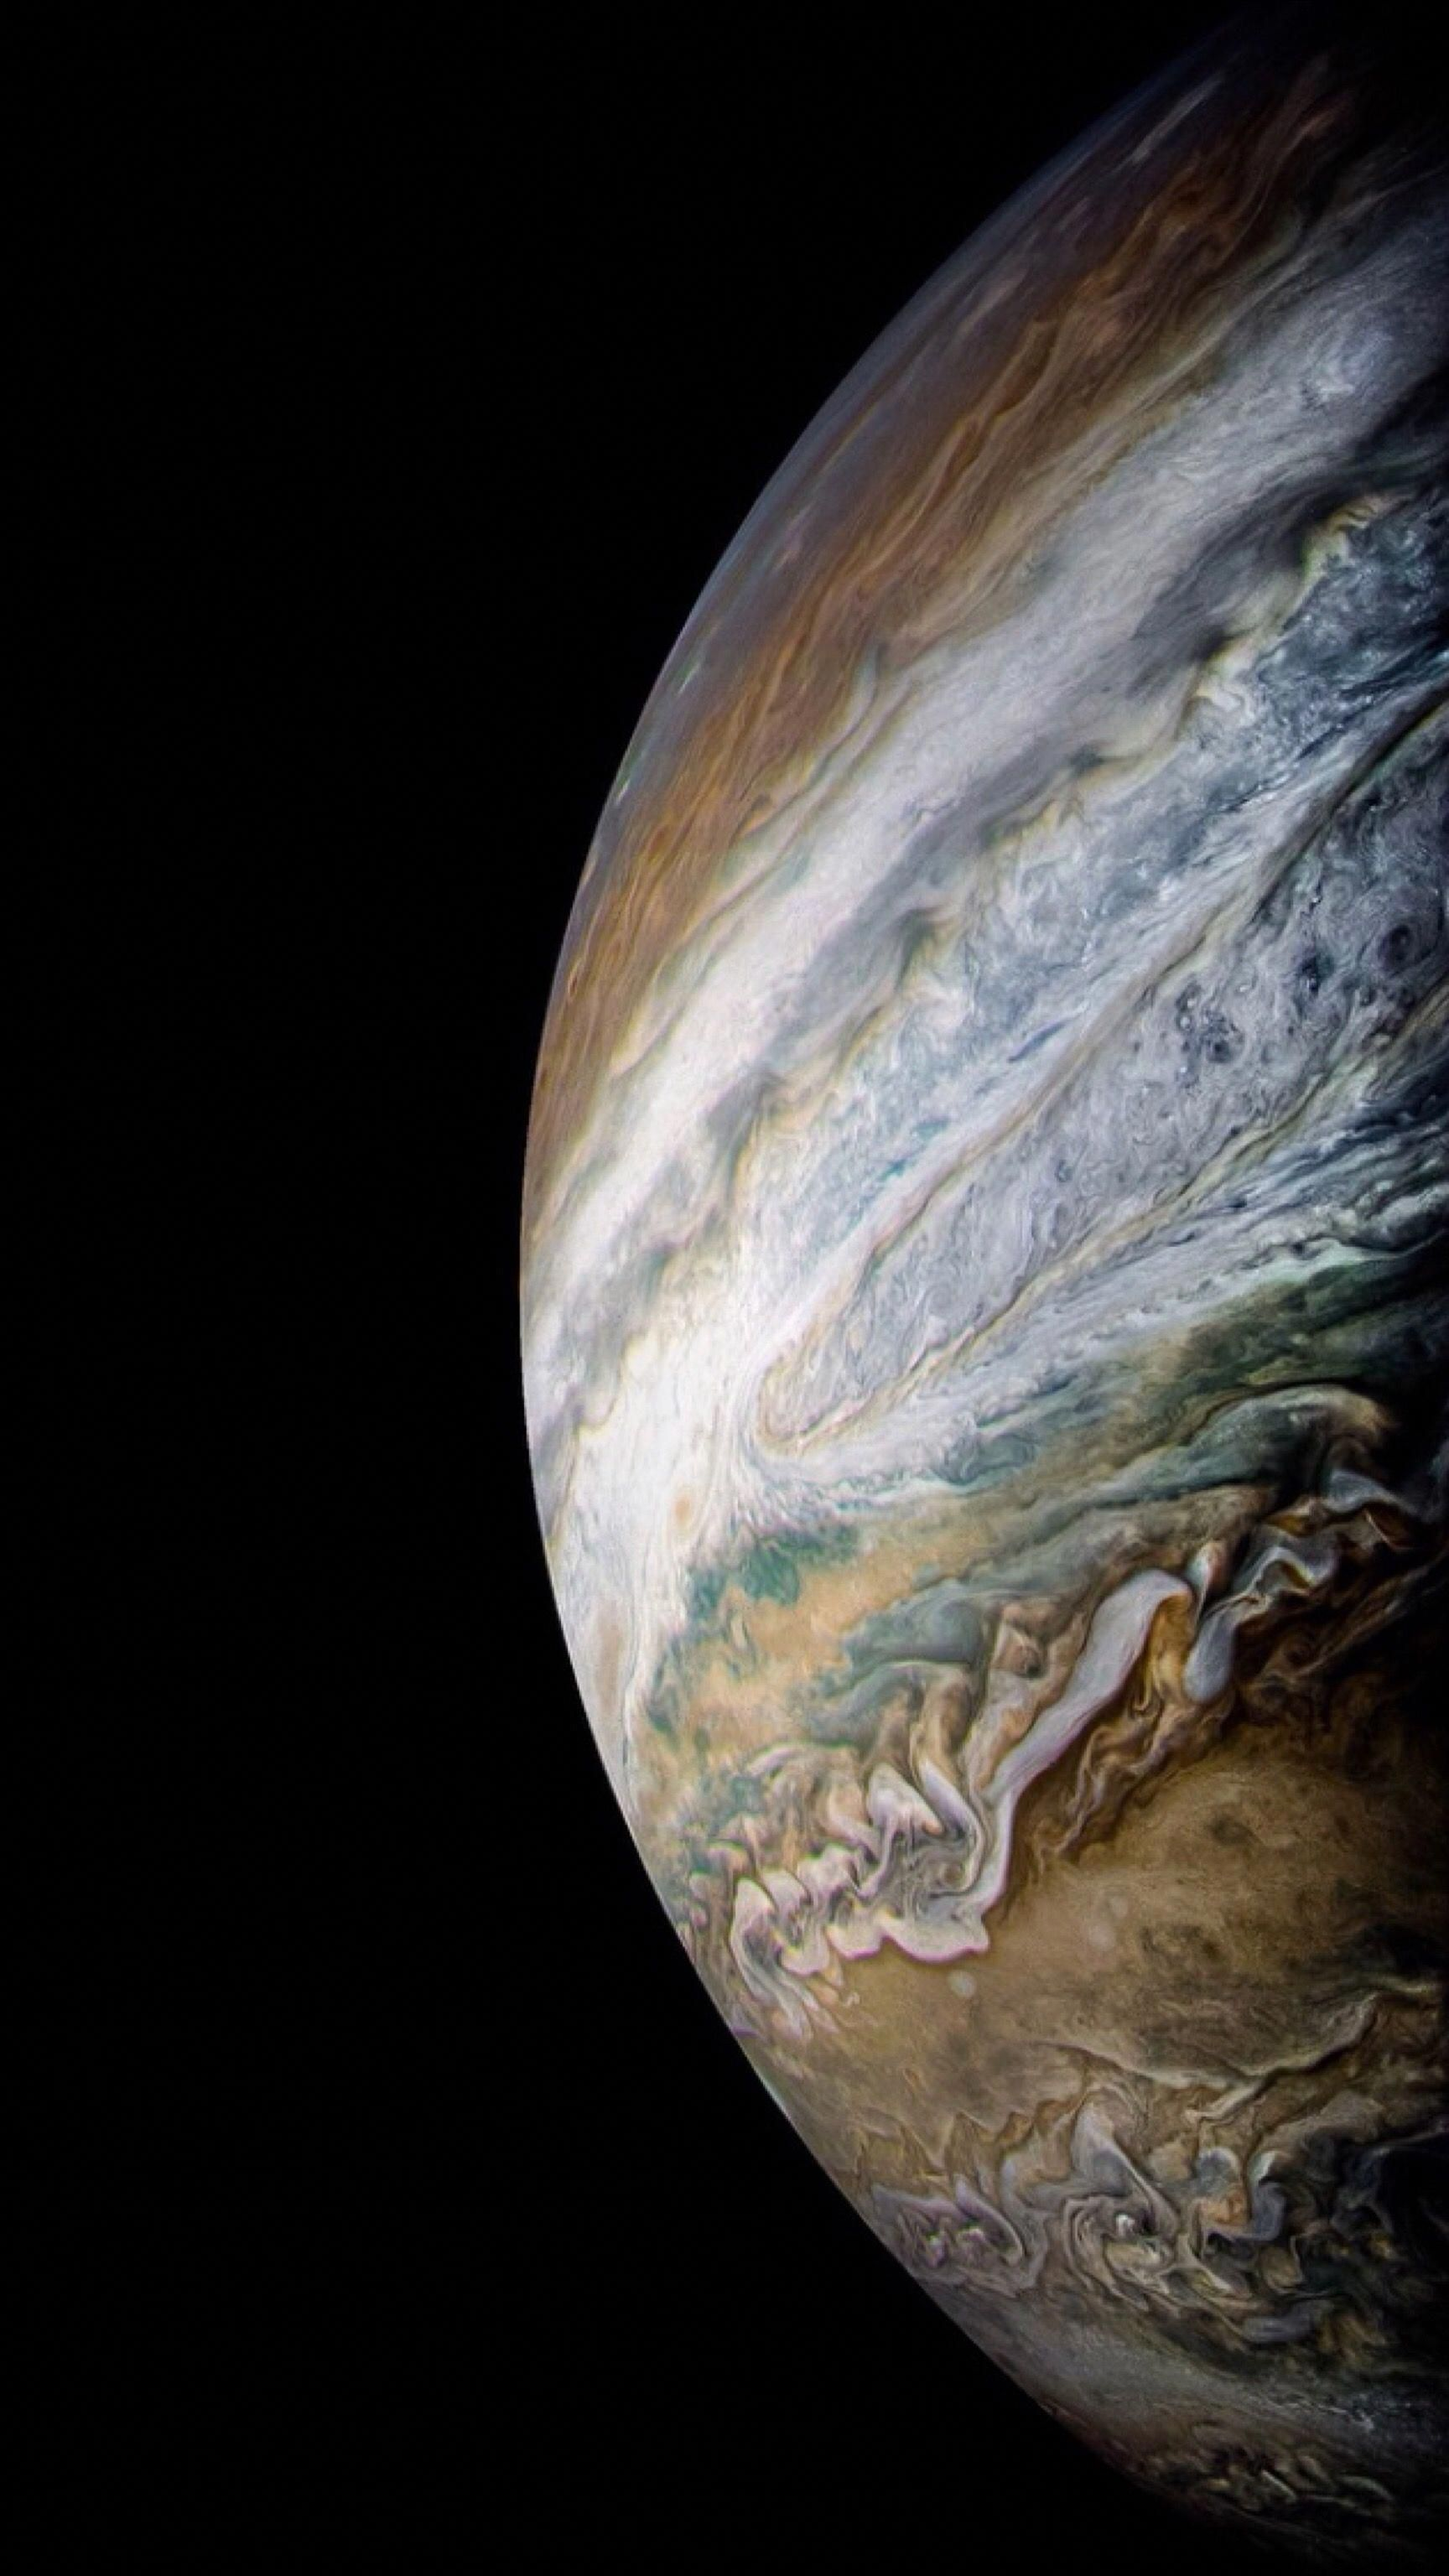 Jupiter Picture 2 Astronomytelescopes Astronomy Photography Space And Astronomy Astronomy